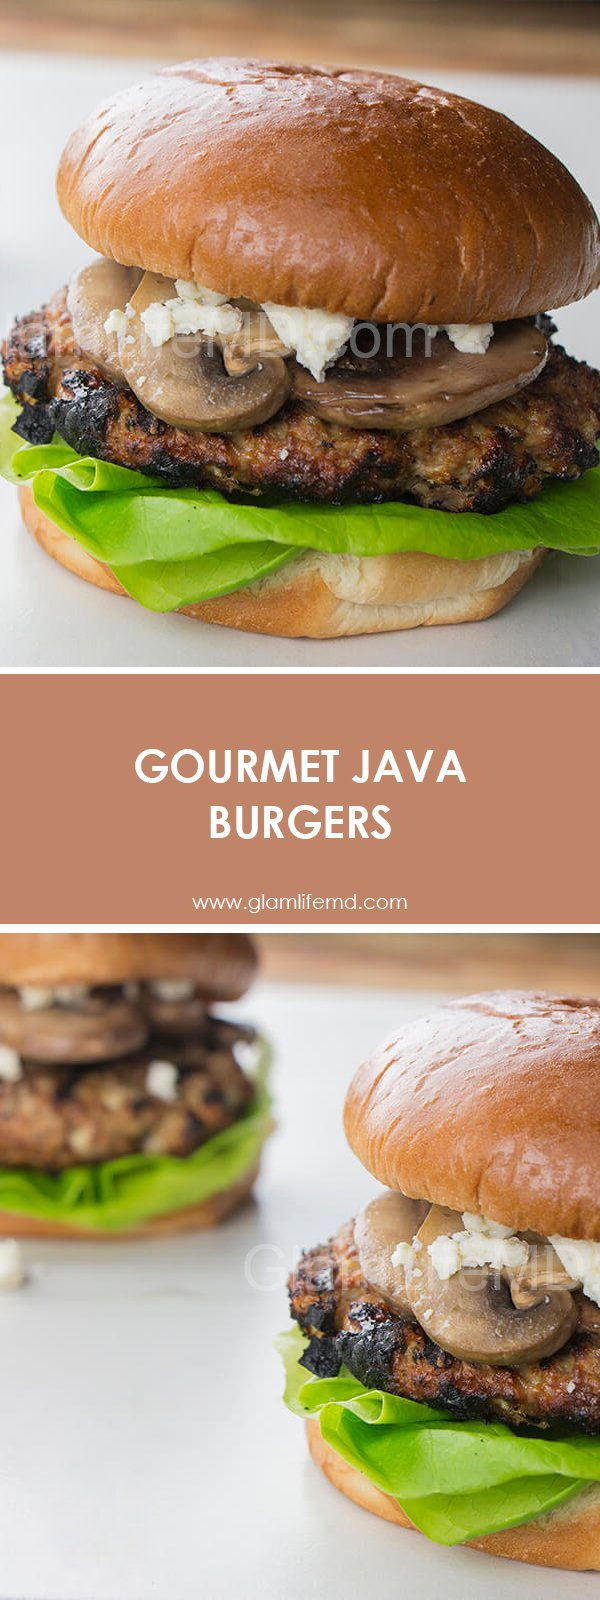 Gourmet Java Burgers | Easy Recipes Lunch